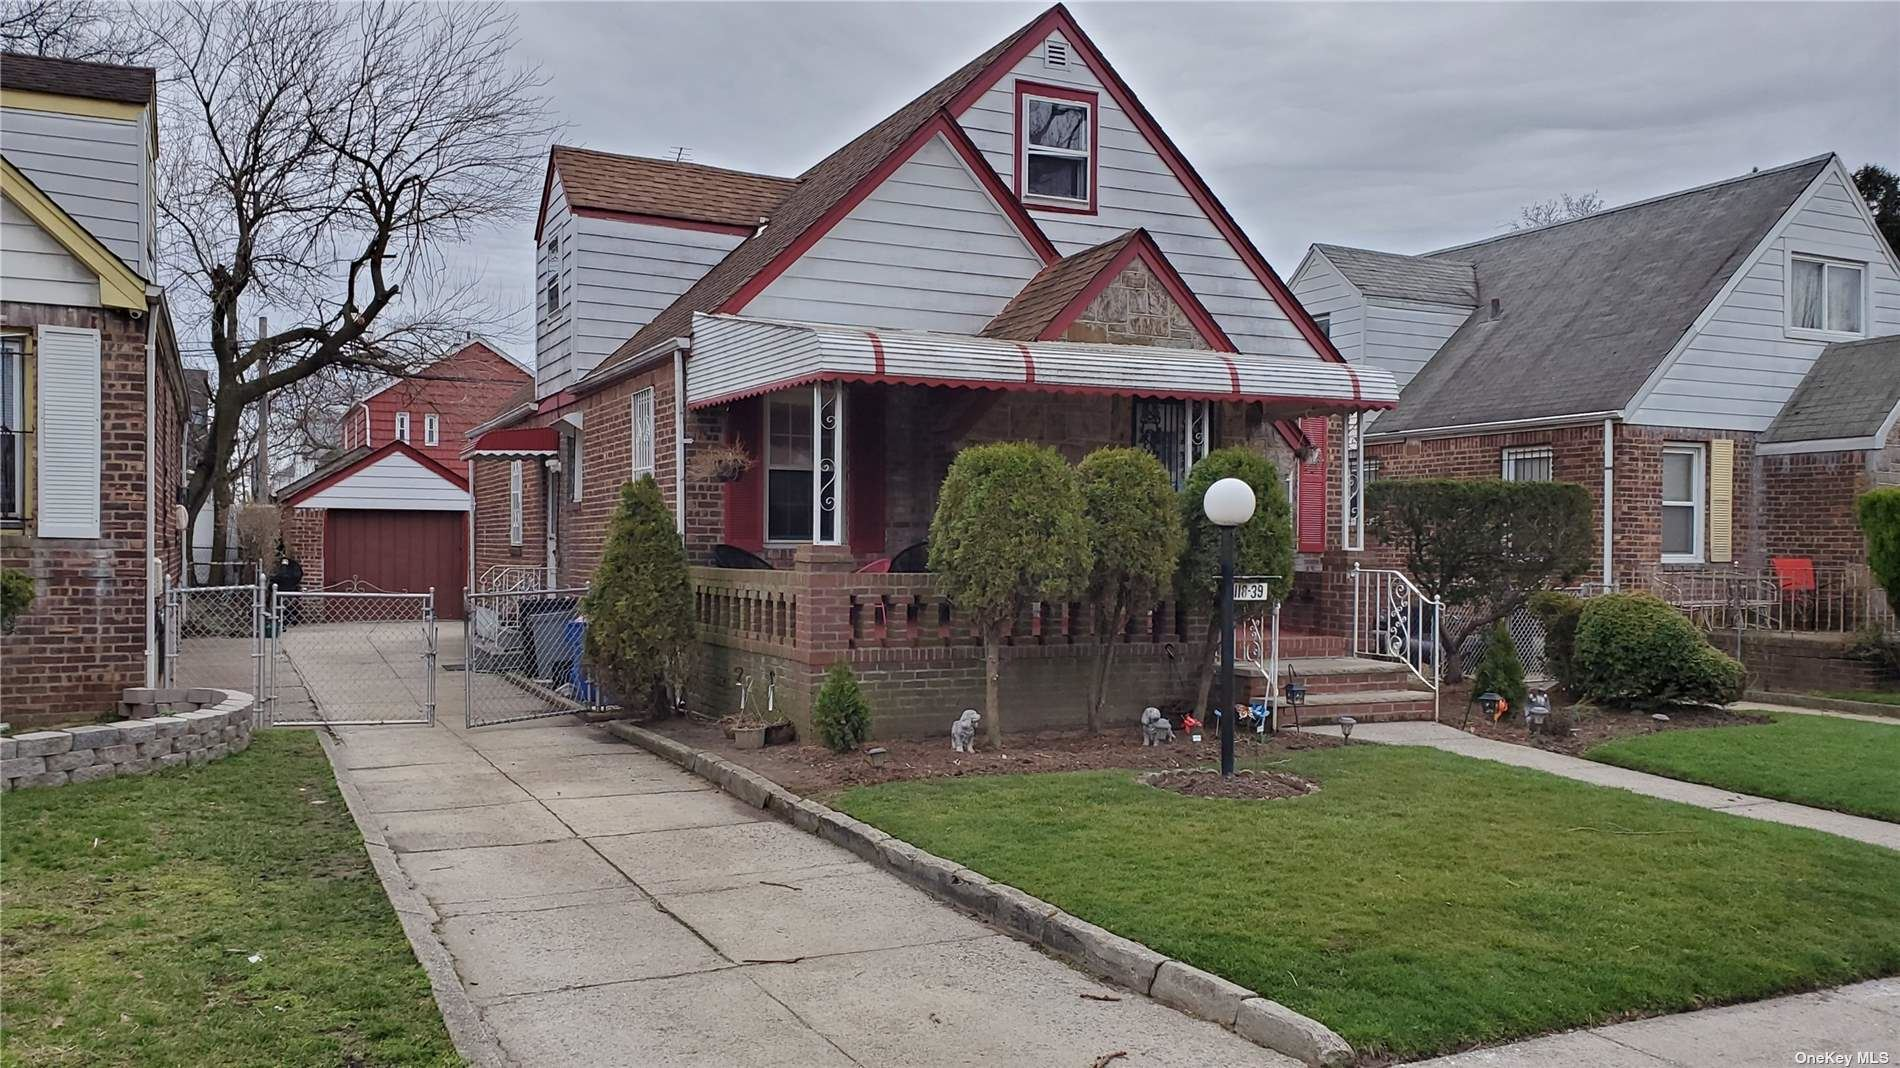 118-39 223 Street, Cambria Heights, NY 11411 - MLS#: 3298951